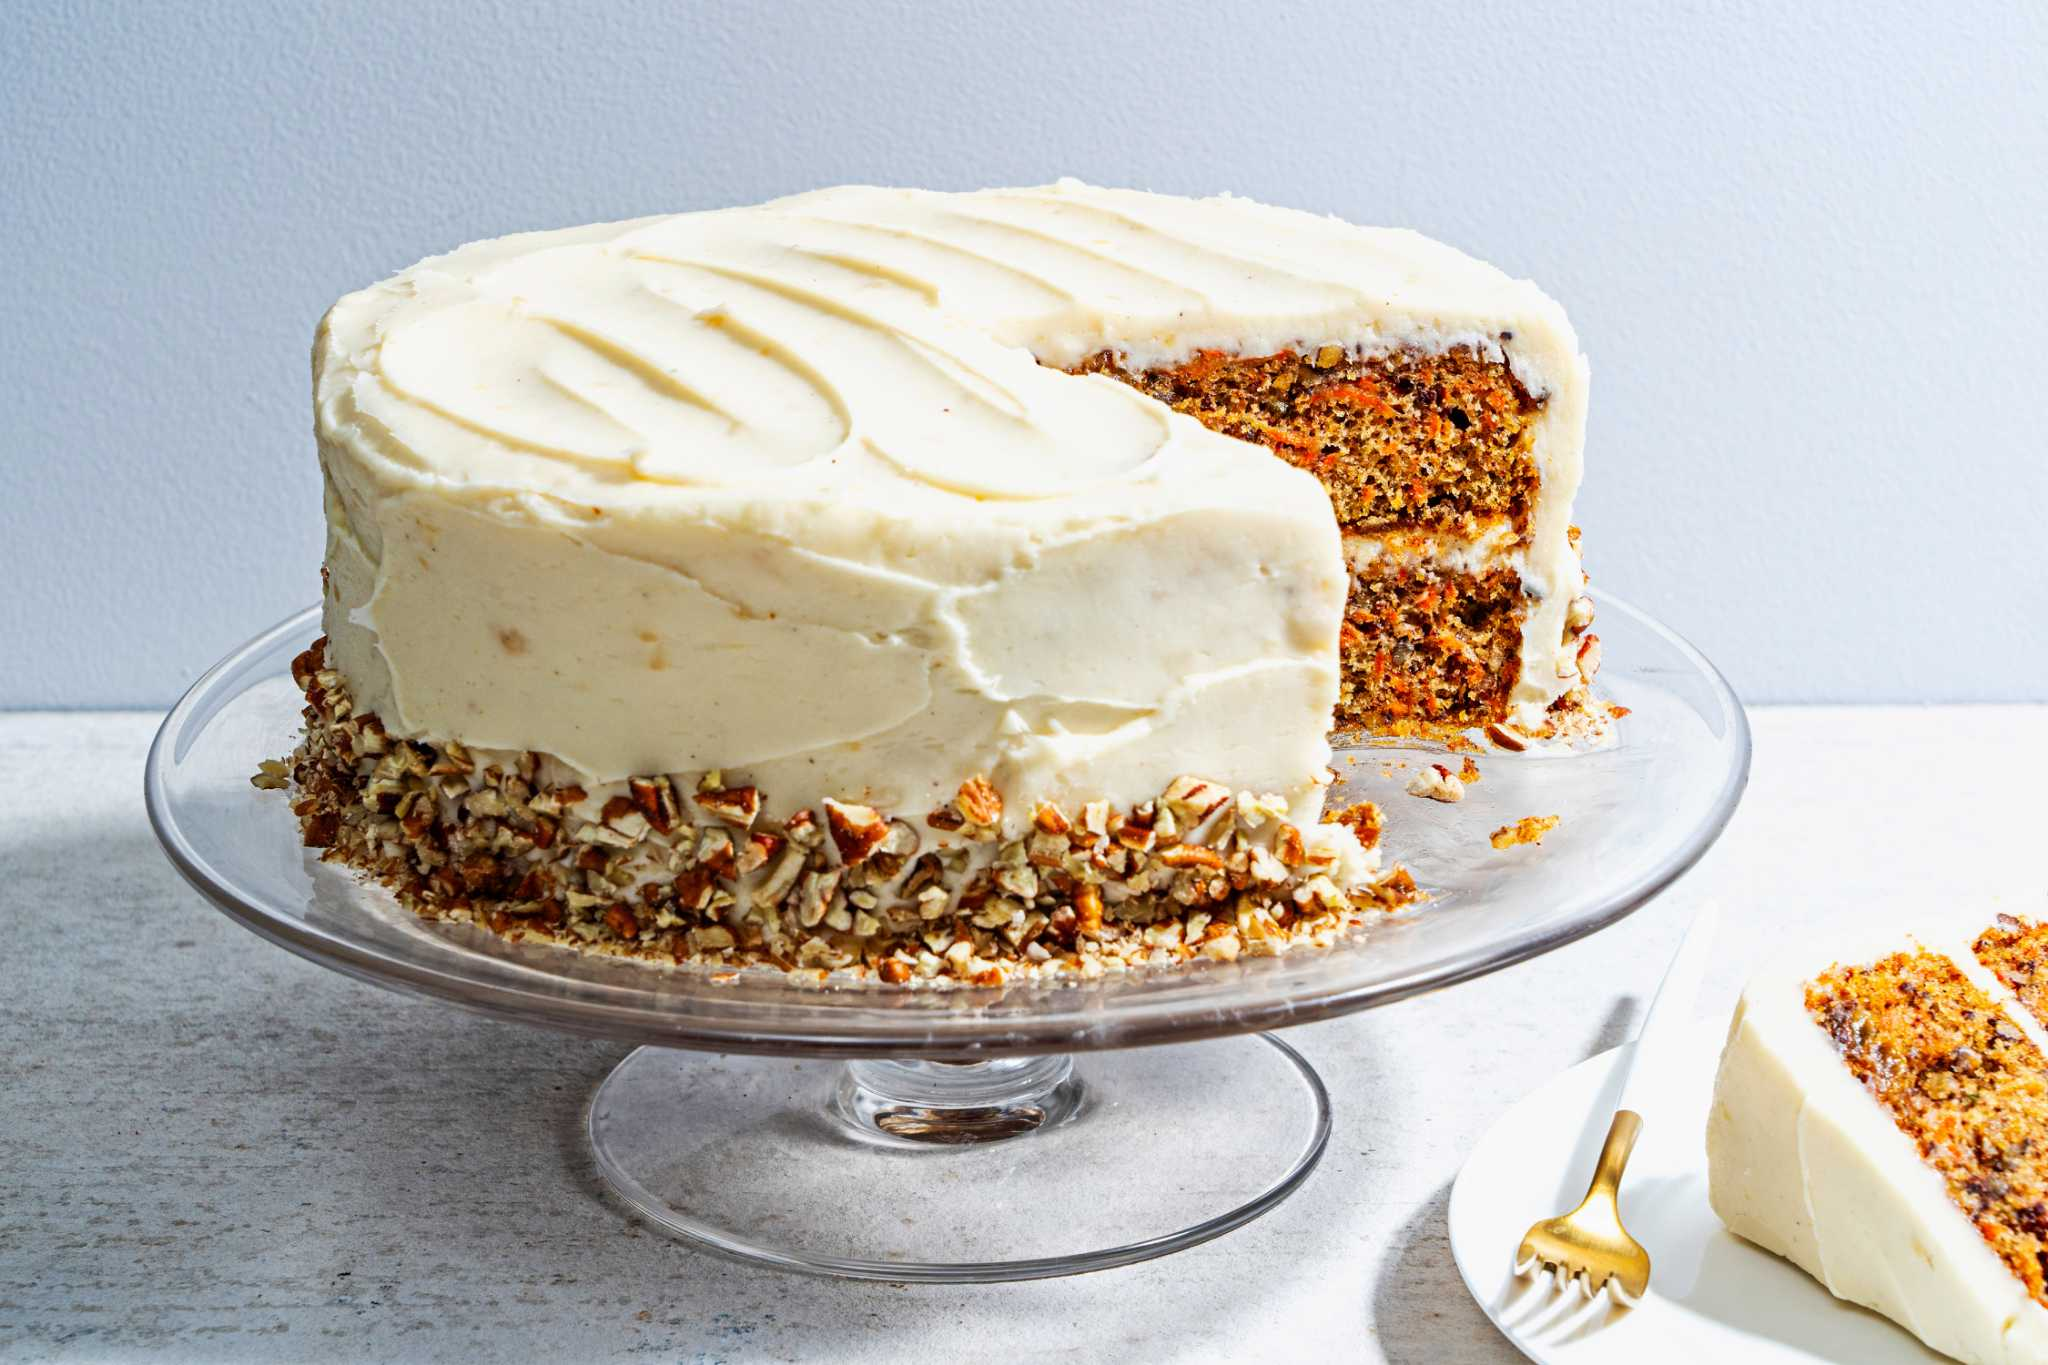 This carrot cake with brown butter-cream cheese frosting will keep you coming back for more